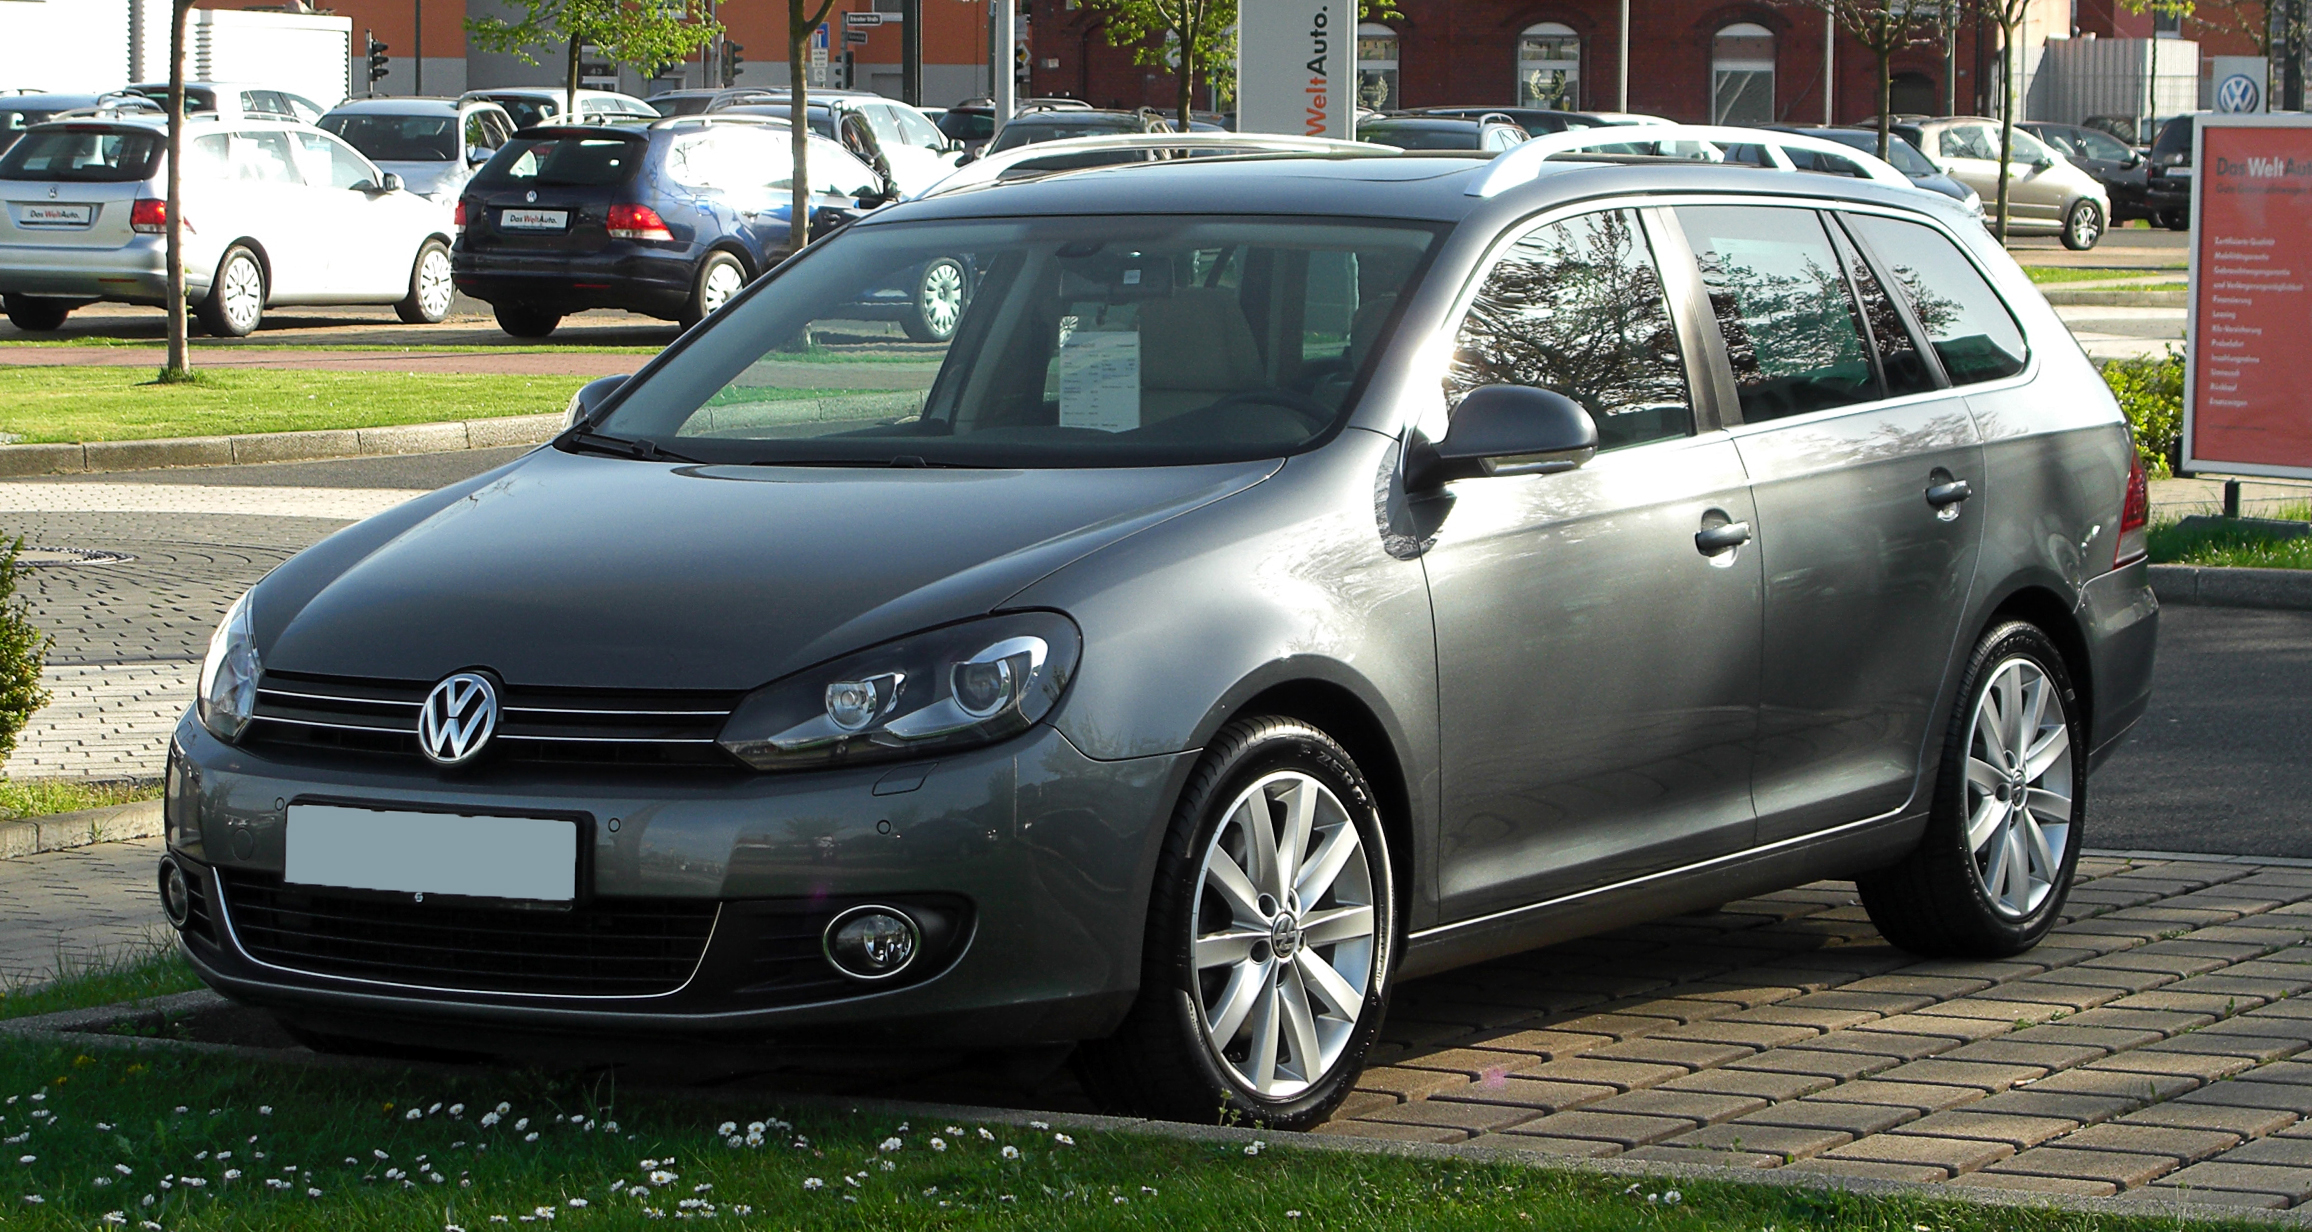 2010 volkswagen golf vi variant pictures information and specs auto. Black Bedroom Furniture Sets. Home Design Ideas